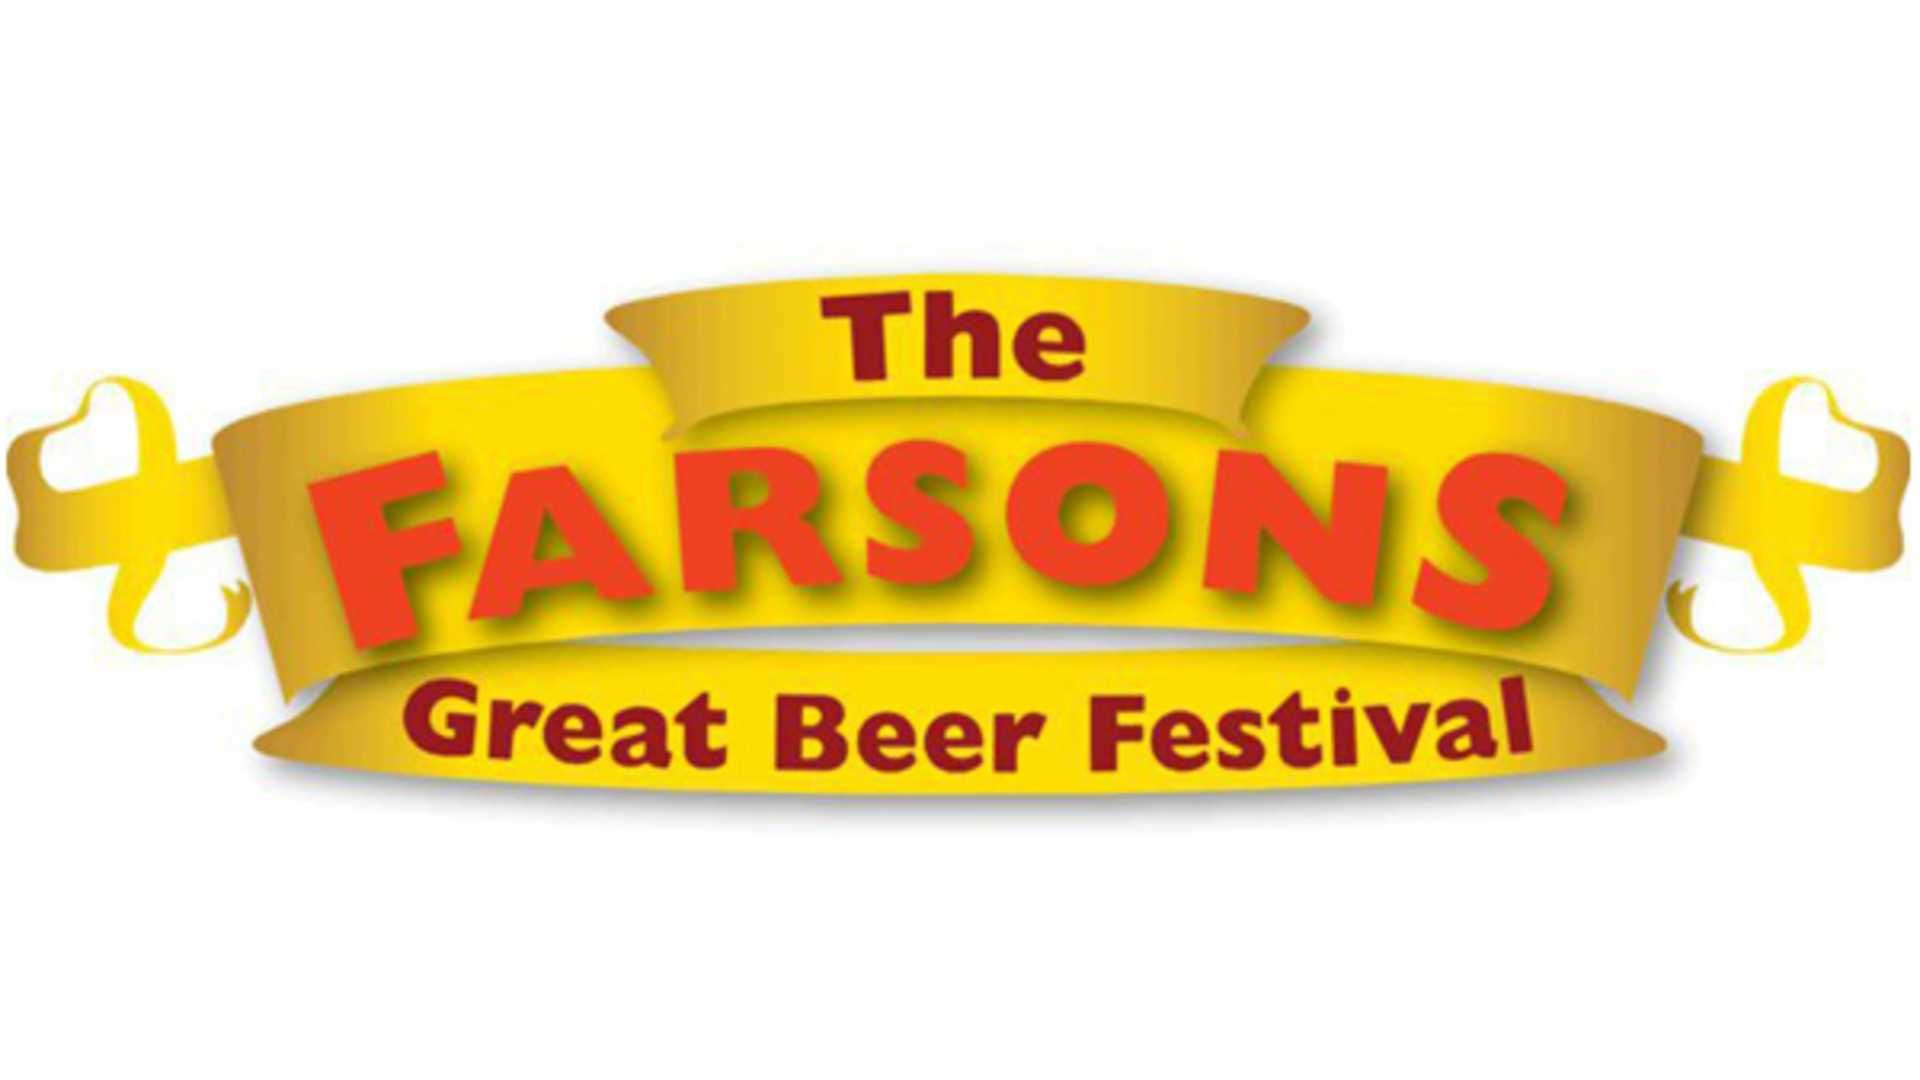 The Farsons Great Beer Festival